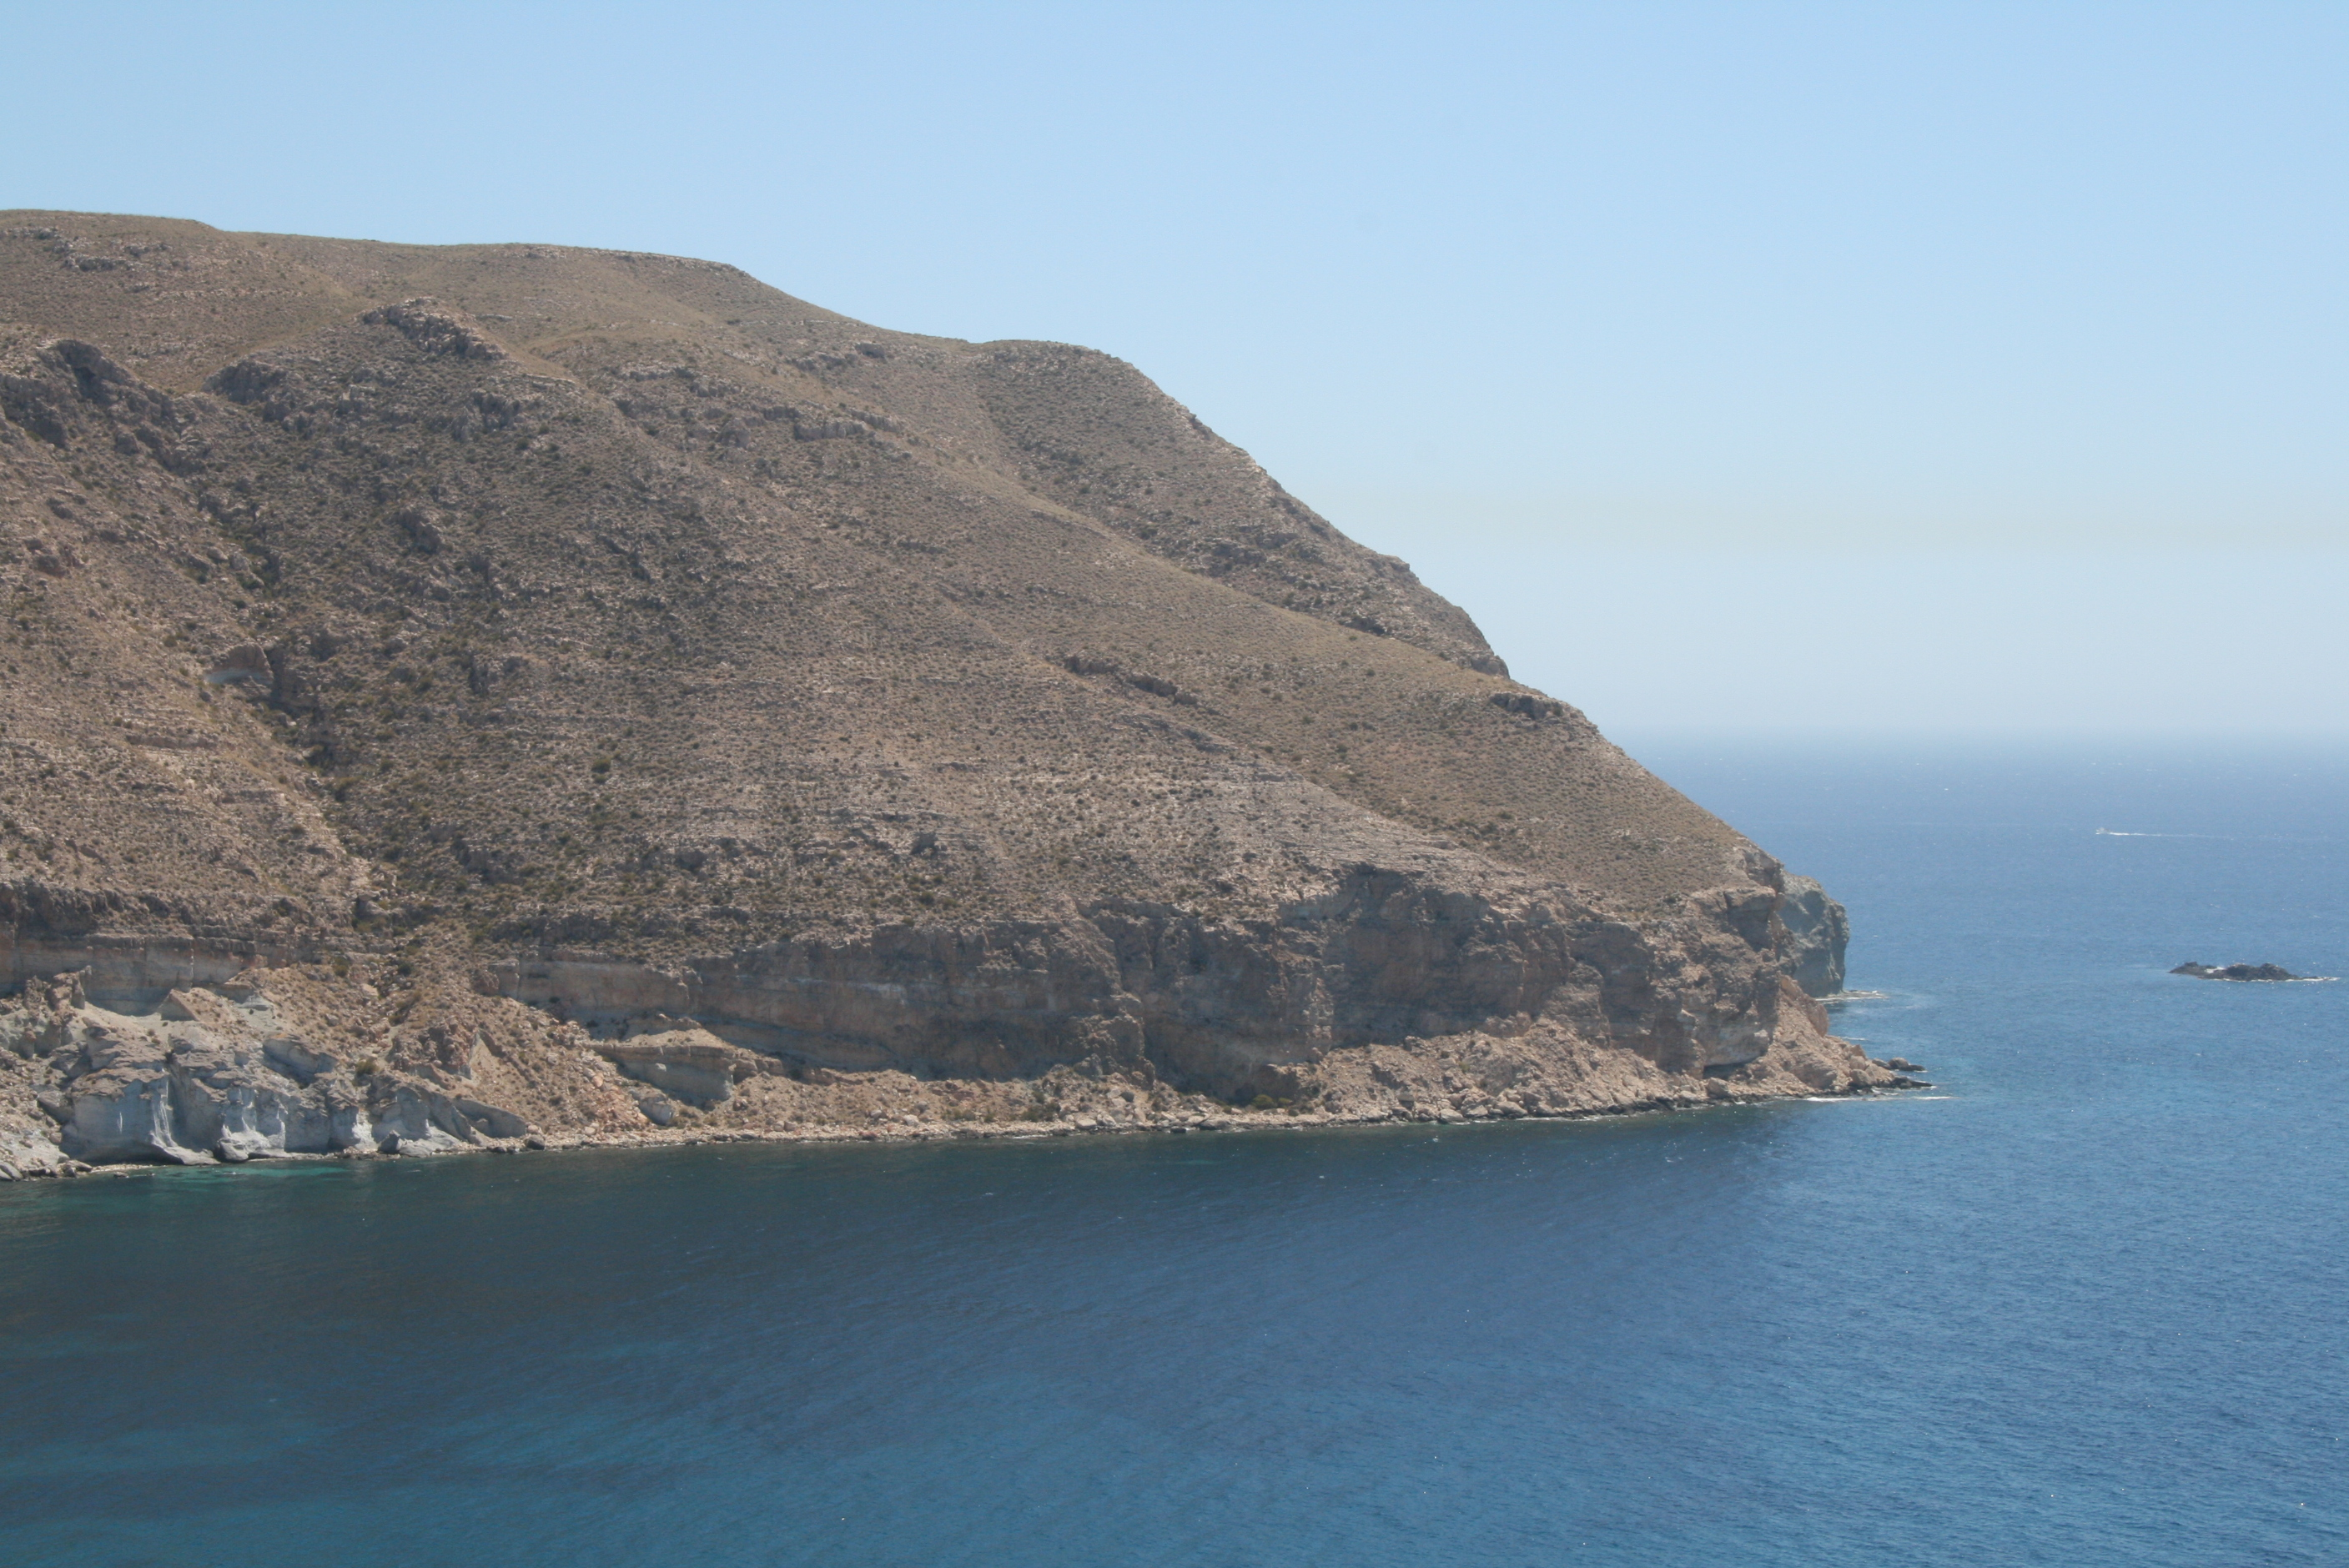 Rocky Cliff, Blue, Cliff, Island, Landscape, HQ Photo